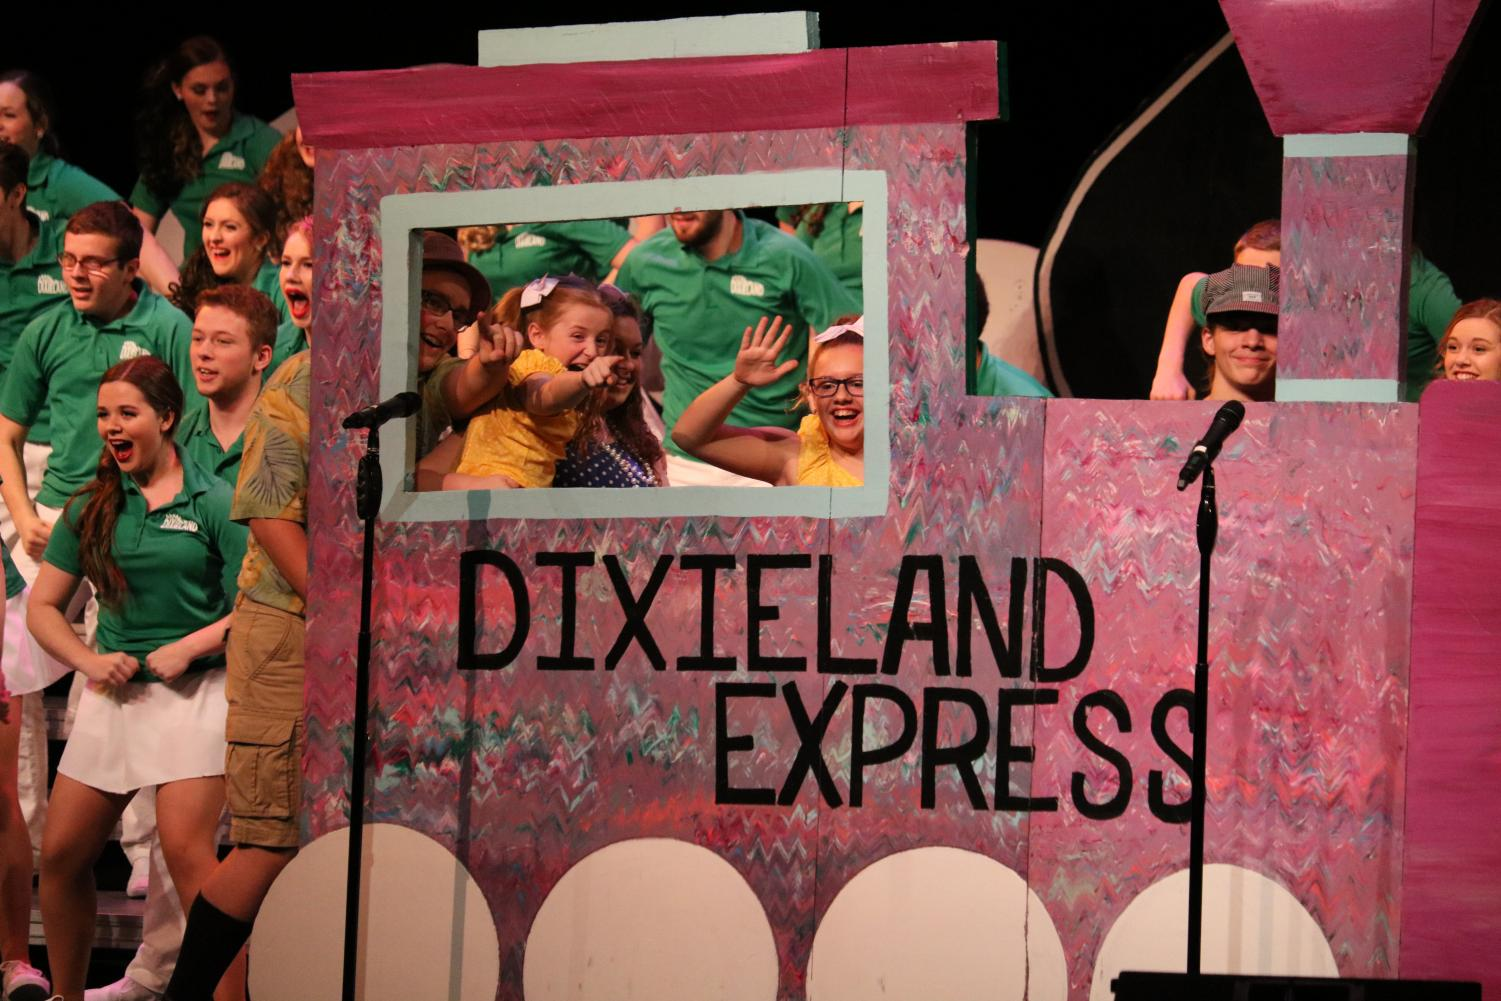 The+Dixieland+Express+is+revealed+to+audience+members.+